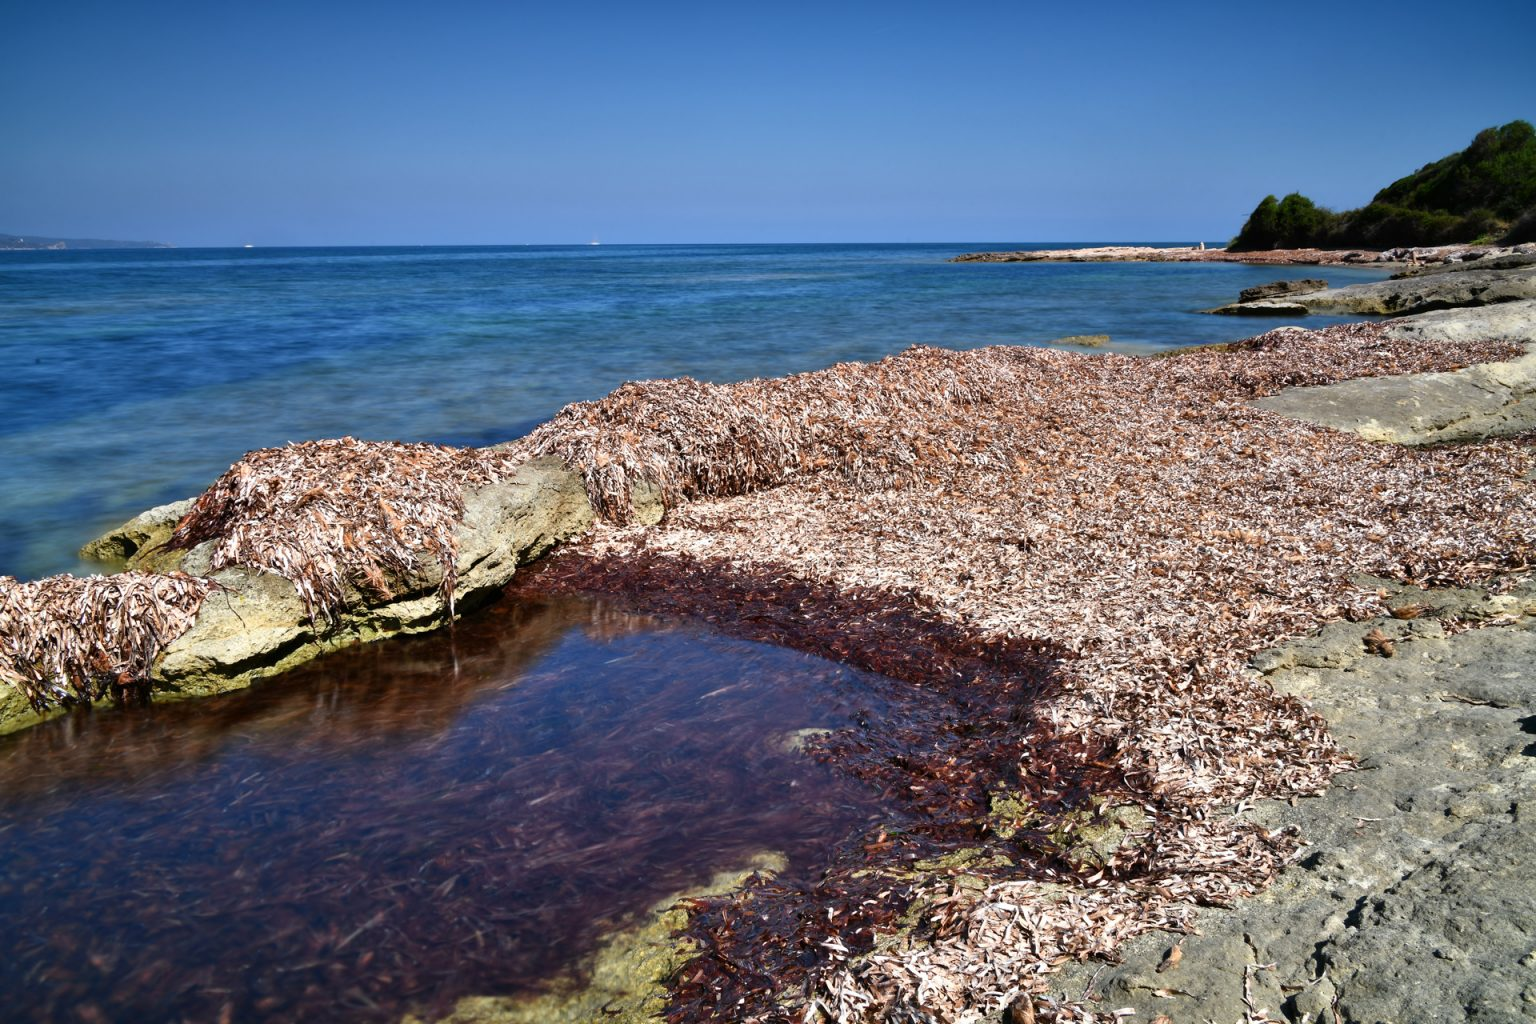 Bio-recycled - Algae 'Posidonia' seaweed collected from Mediterranean beaches.